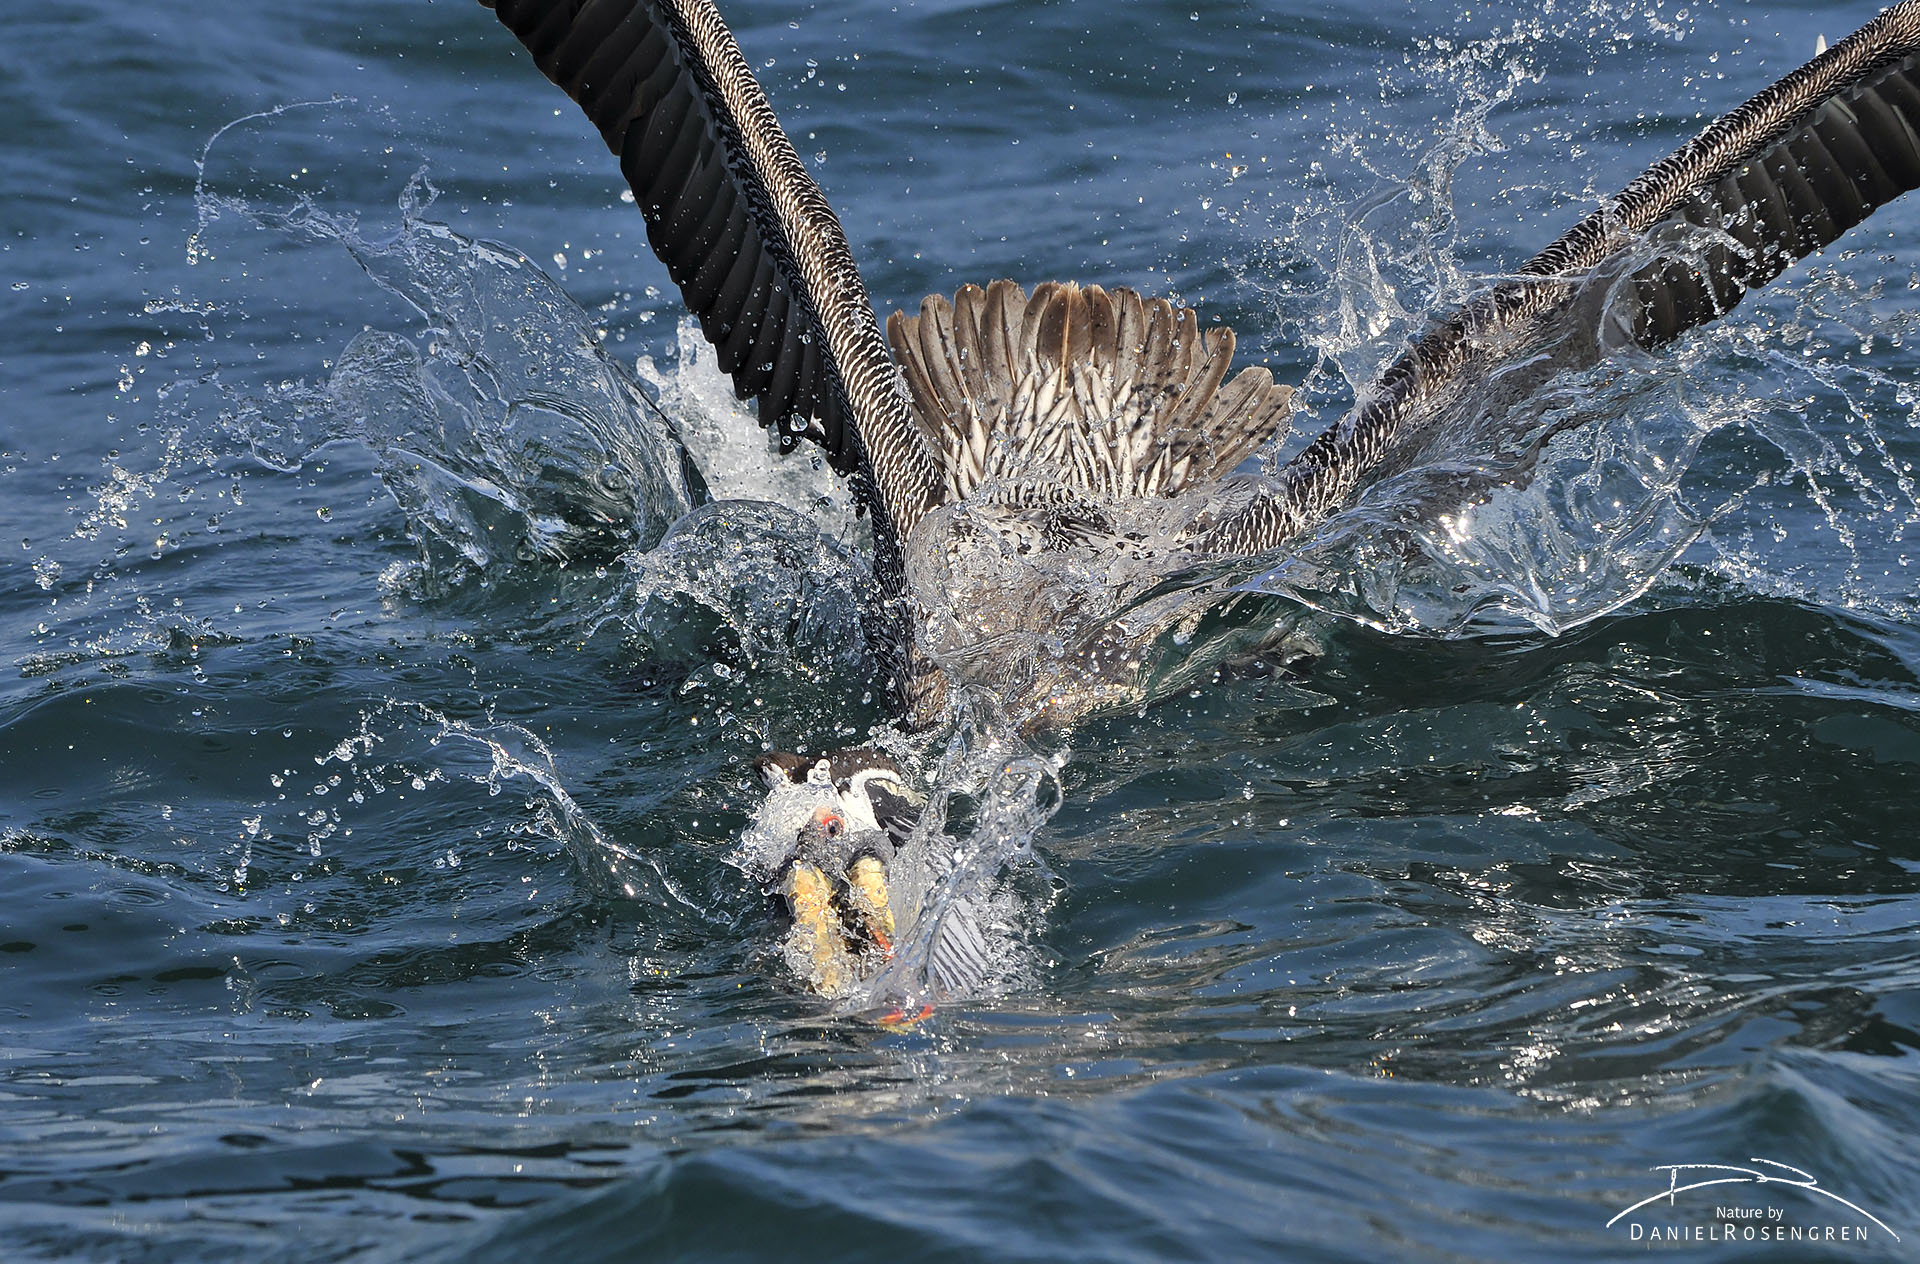 A Peruvian pelican scooping fish with its massive beak. © Daniel Rosengren